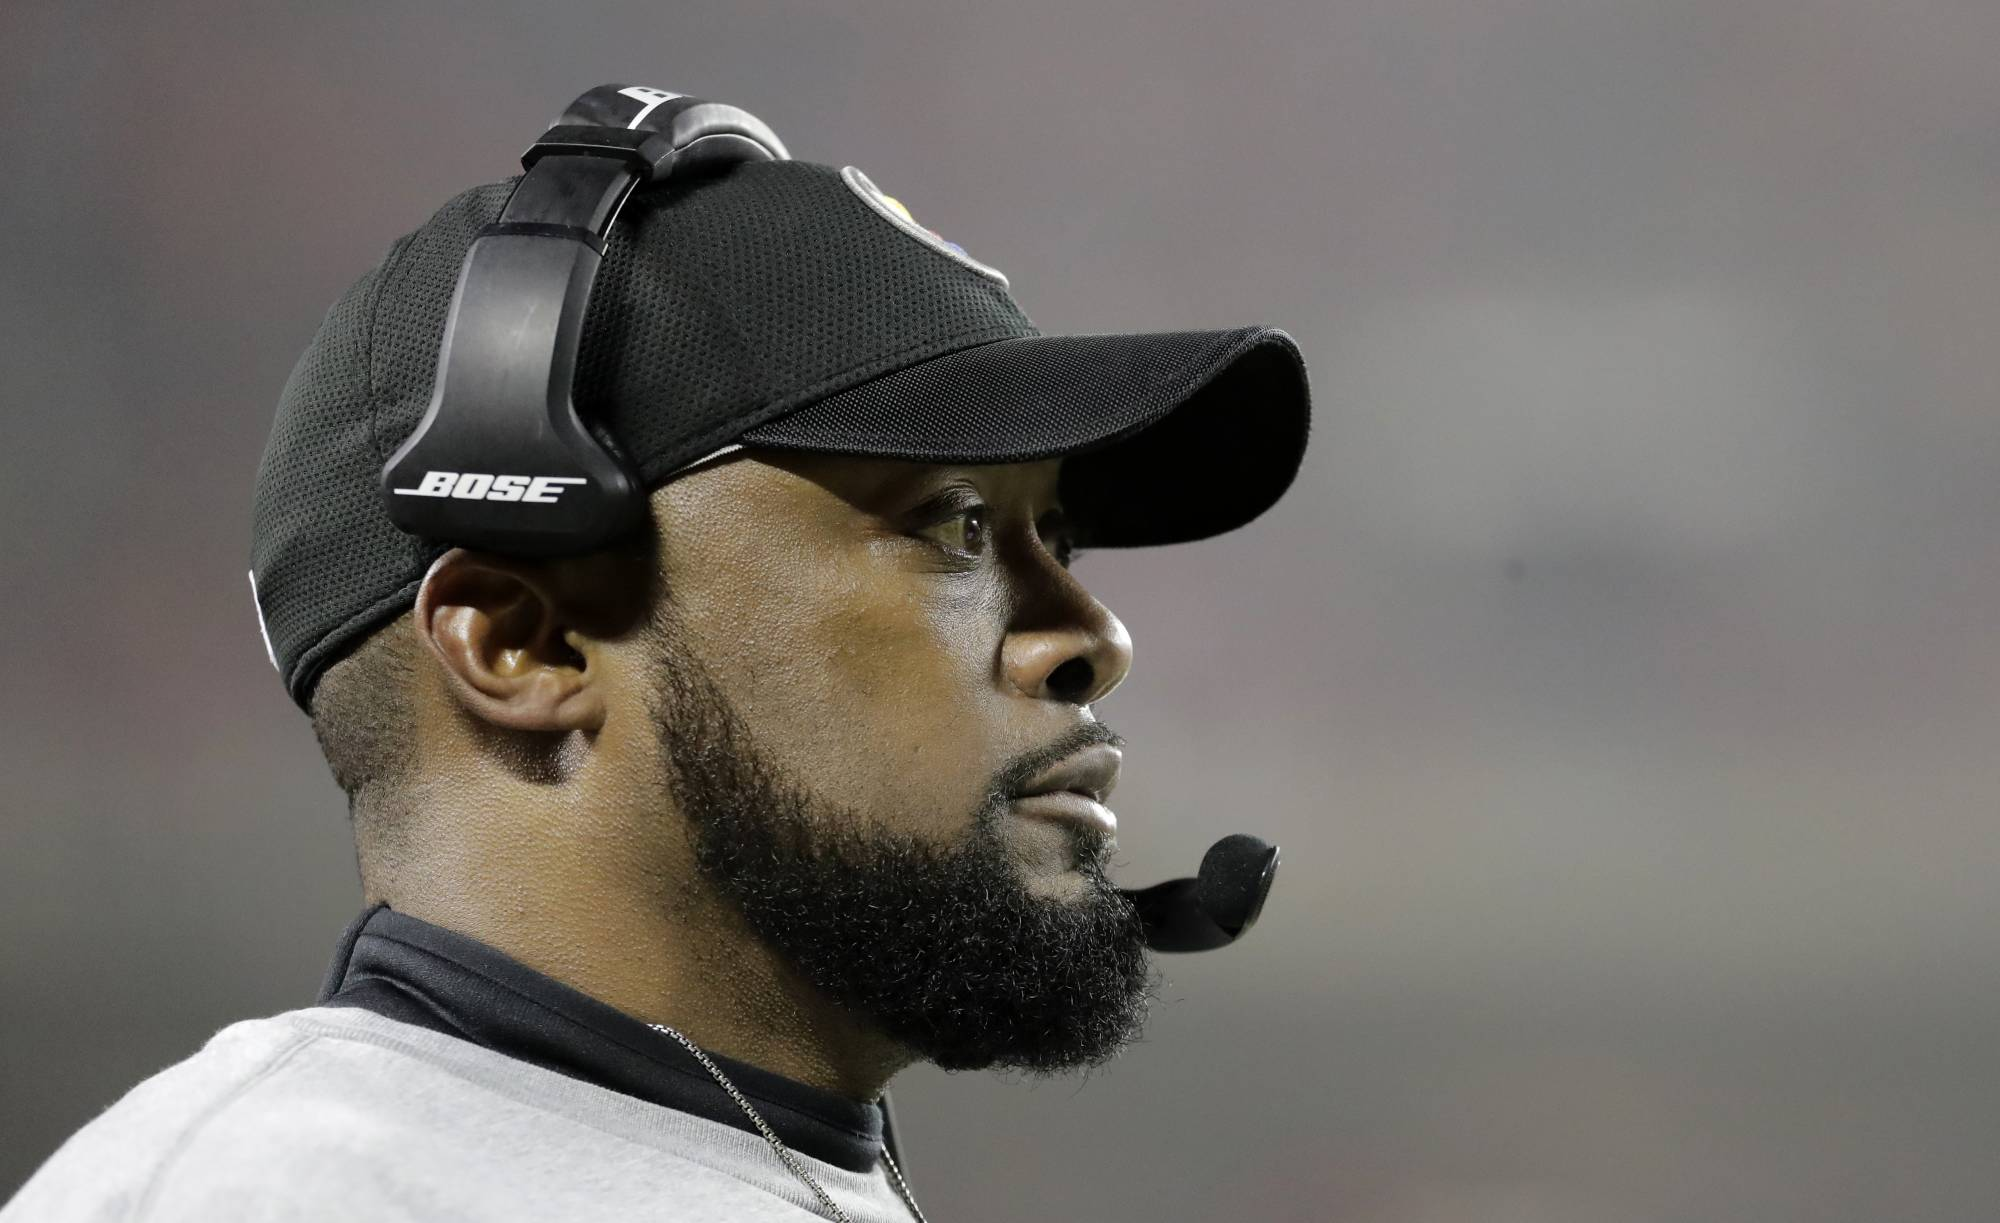 5e9e627f05e PITTSBURGH (AP) — The father in Mike Tomlin regrets the language he used to  describe the New England Patriots during the postgame speech Pittsburgh  Steelers ...